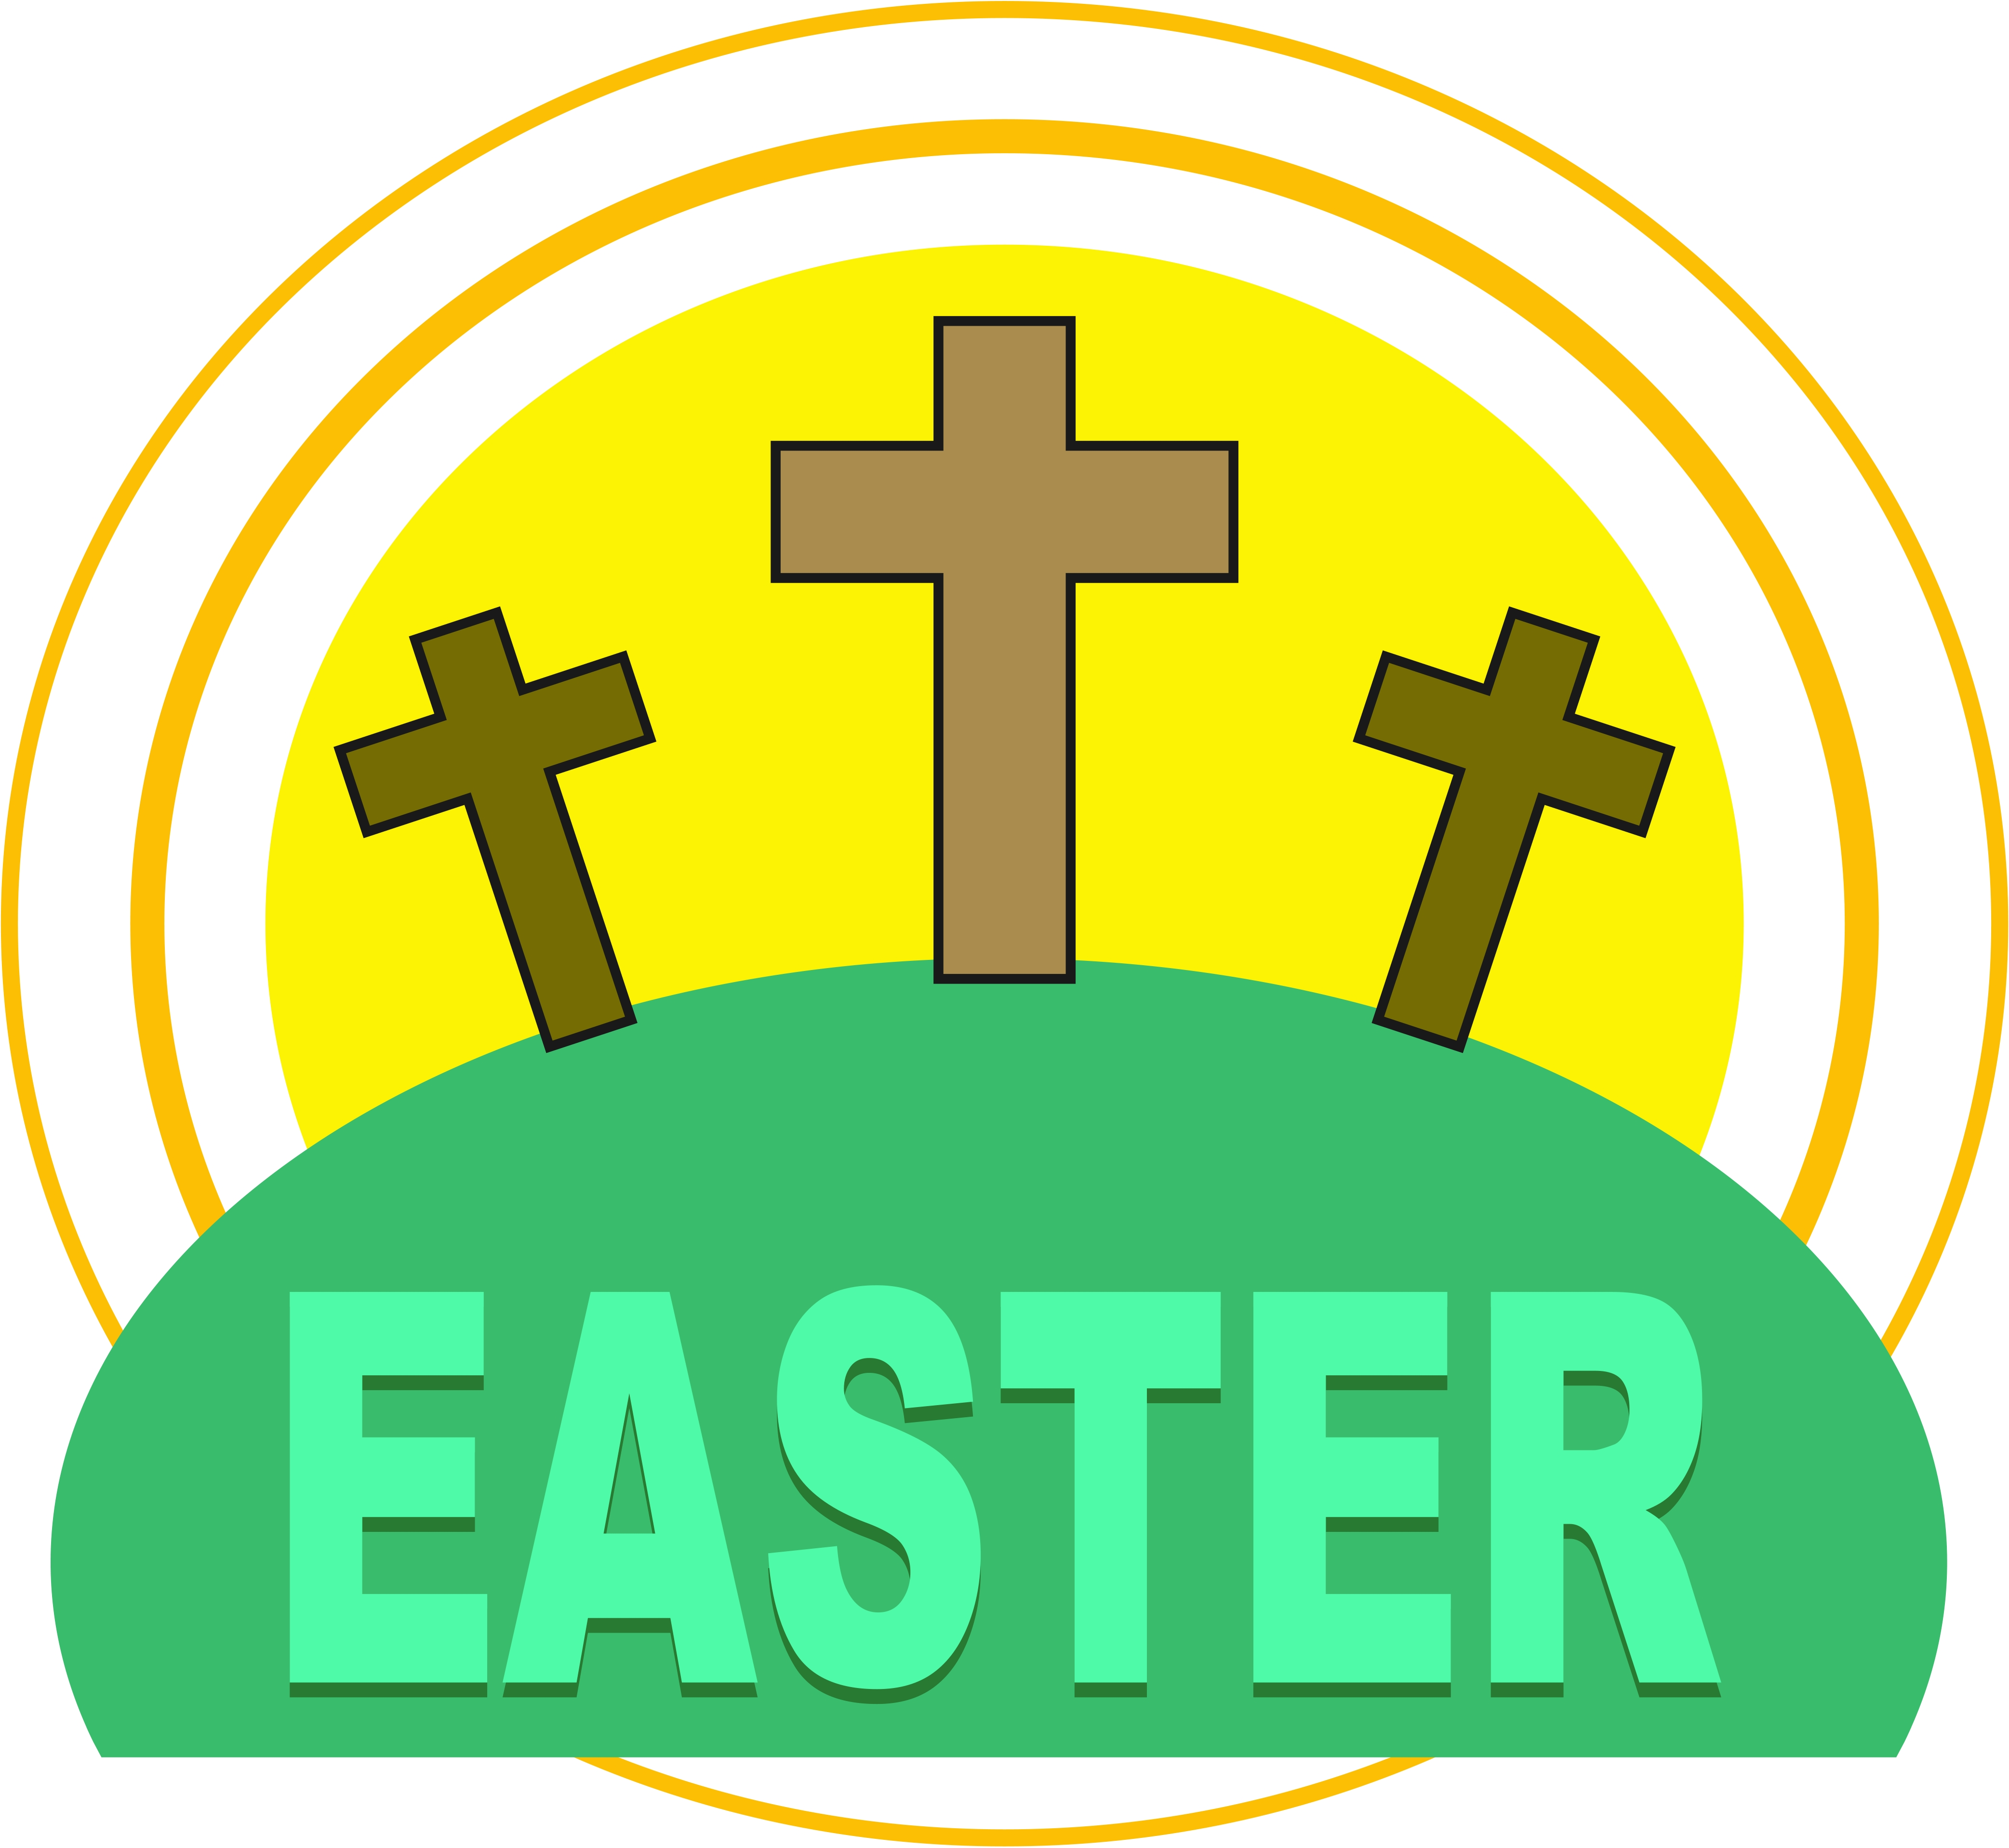 Empty tomb clipart cross. Free church easter cliparts